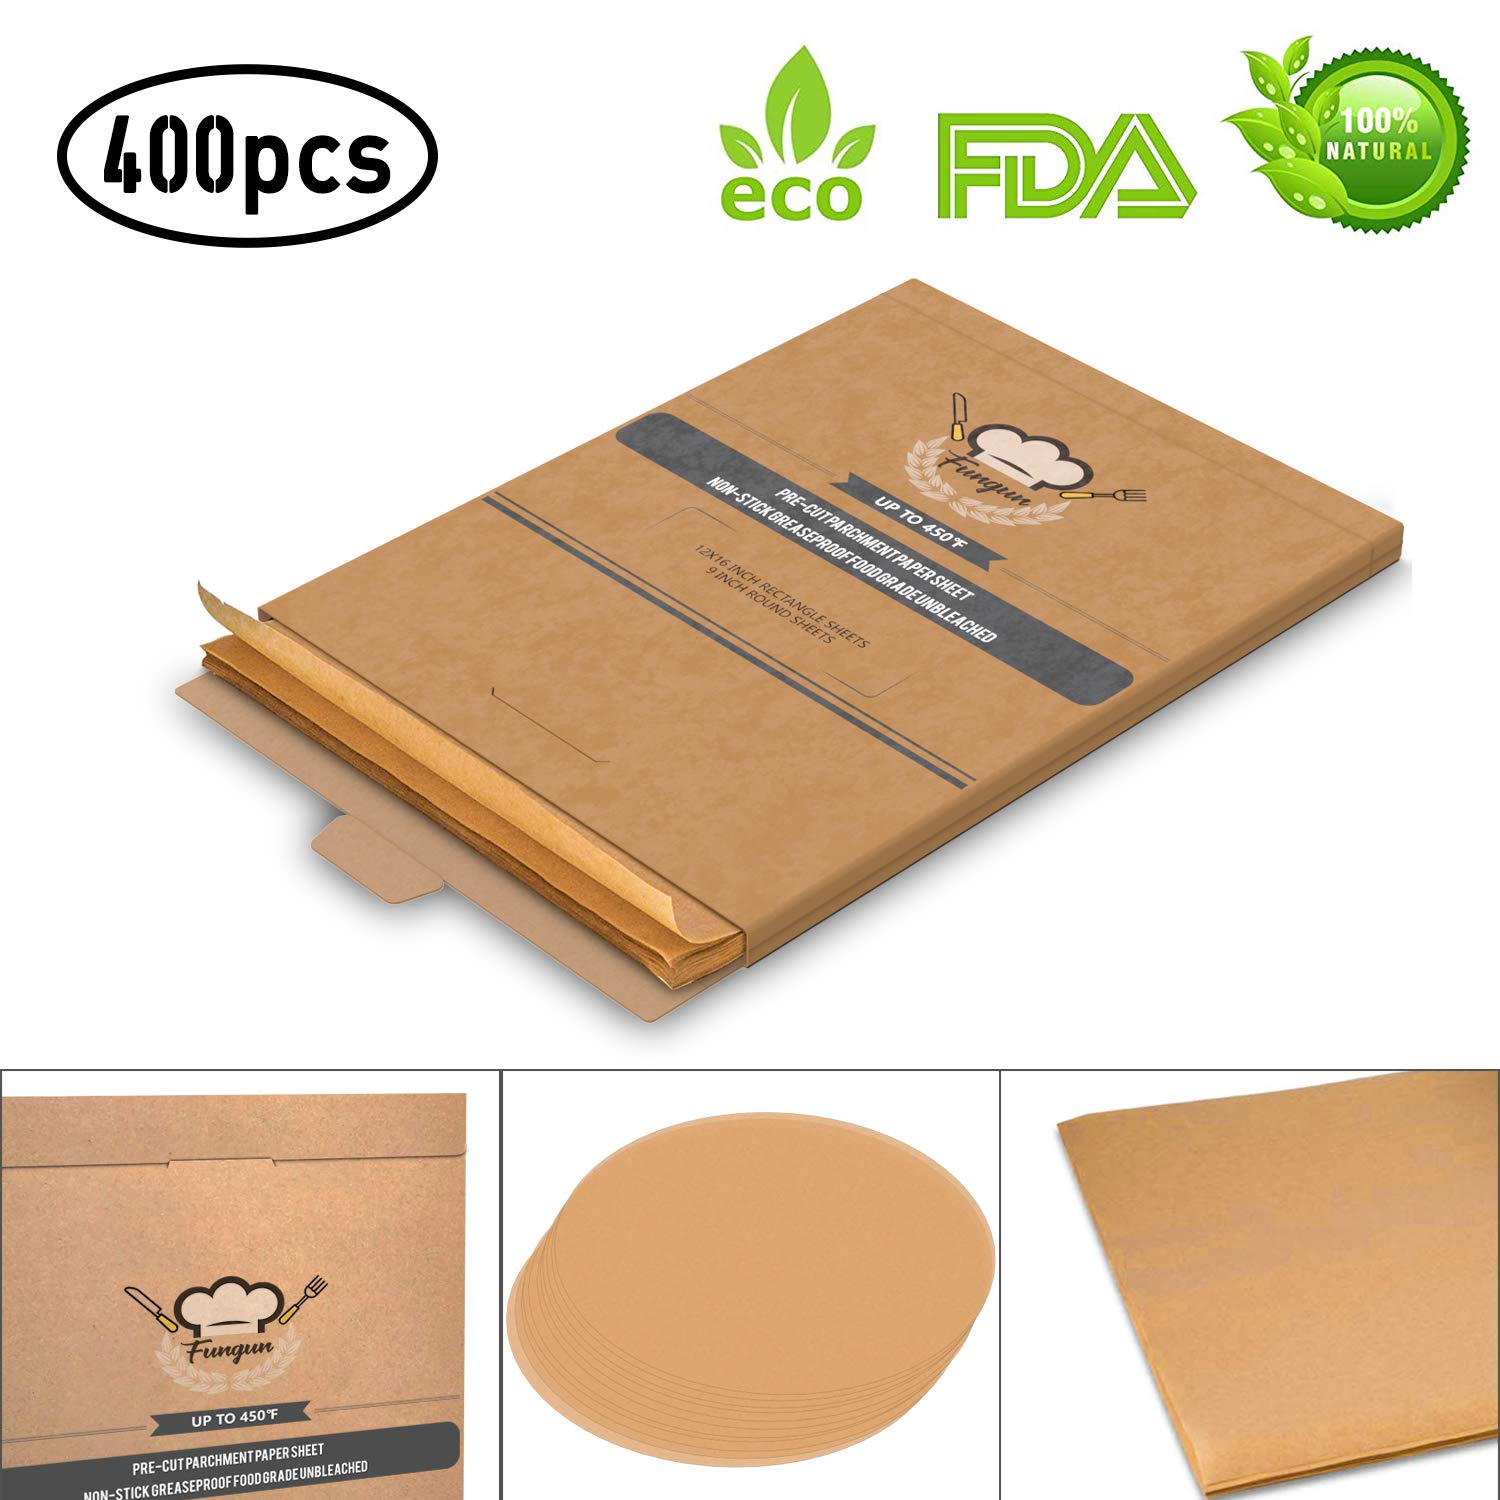 """Fungun Unbleached Precut Parchment Paper, Non-Stick 200 Pcs 12x16"""" Rectangle & 200 Pcs 9"""" Round Baking Sheets for Grilling Air Fryer Steaming Bread Cake Cookie and More (Round and Rectangle Set)"""